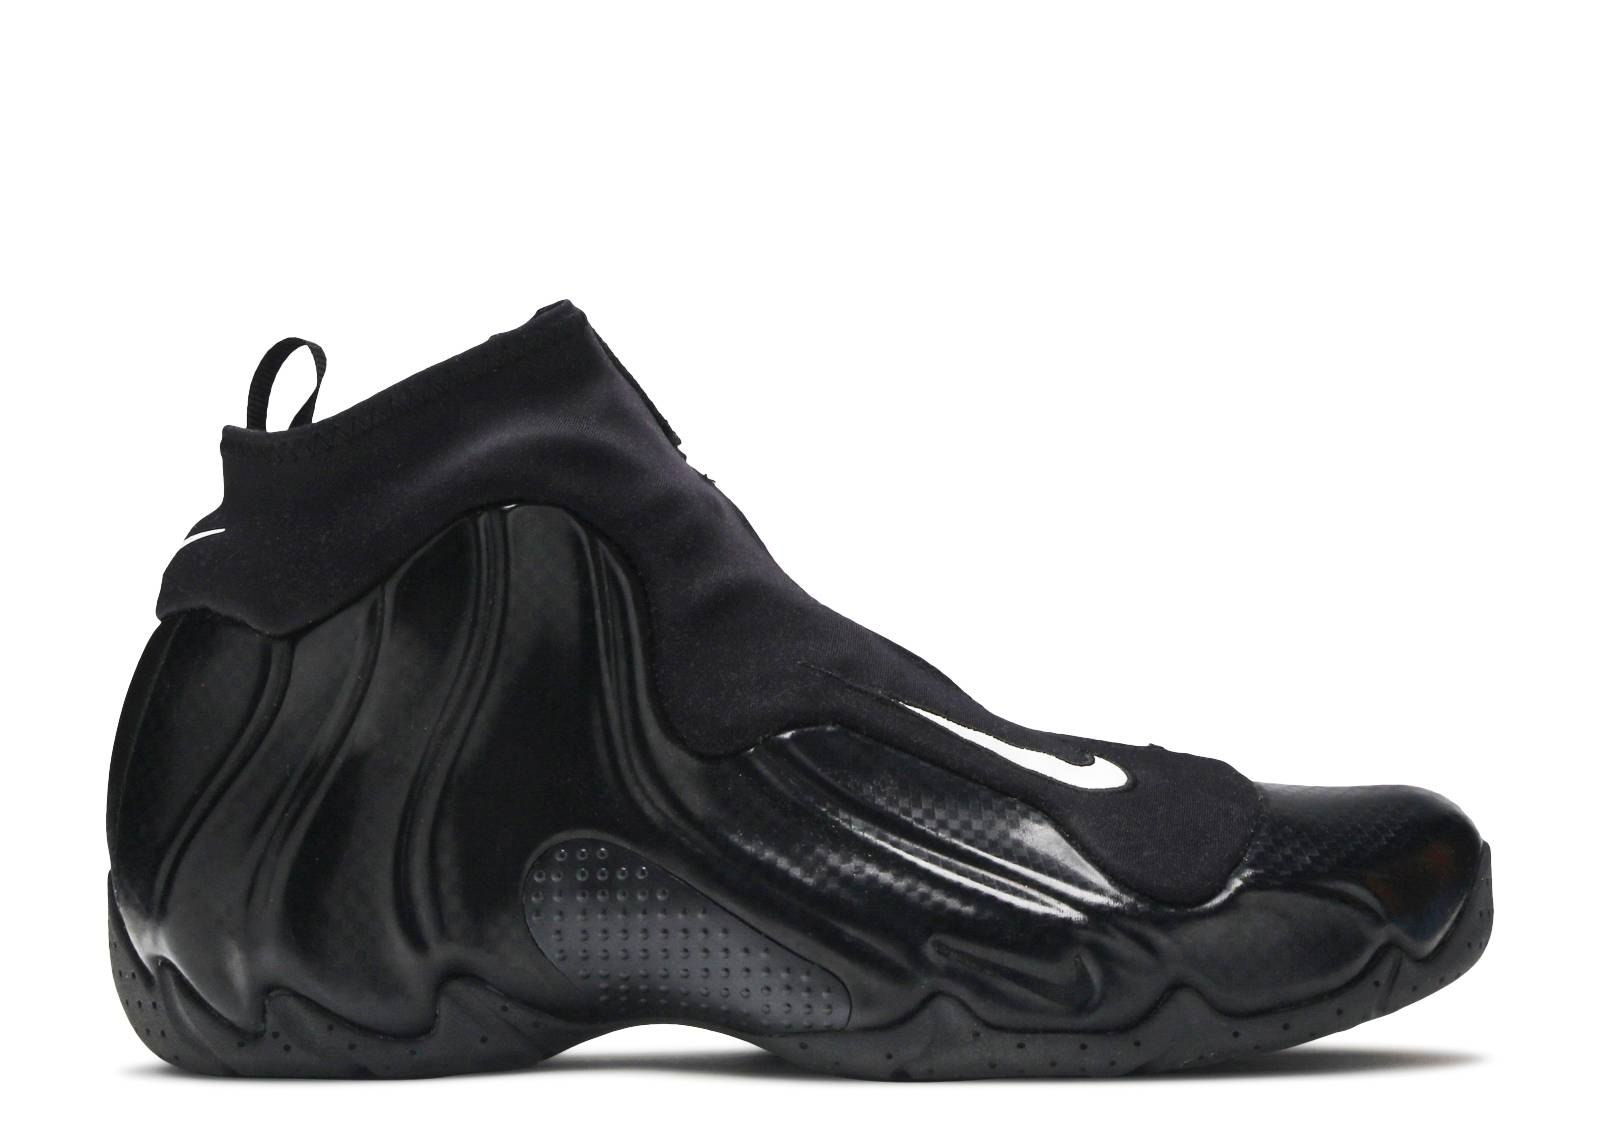 new styles cf3fd 5ab31 nike foamposite carbon fiber snakeskin 9  air flightposite 2014 carbon  fiber black black metallic silver flight club